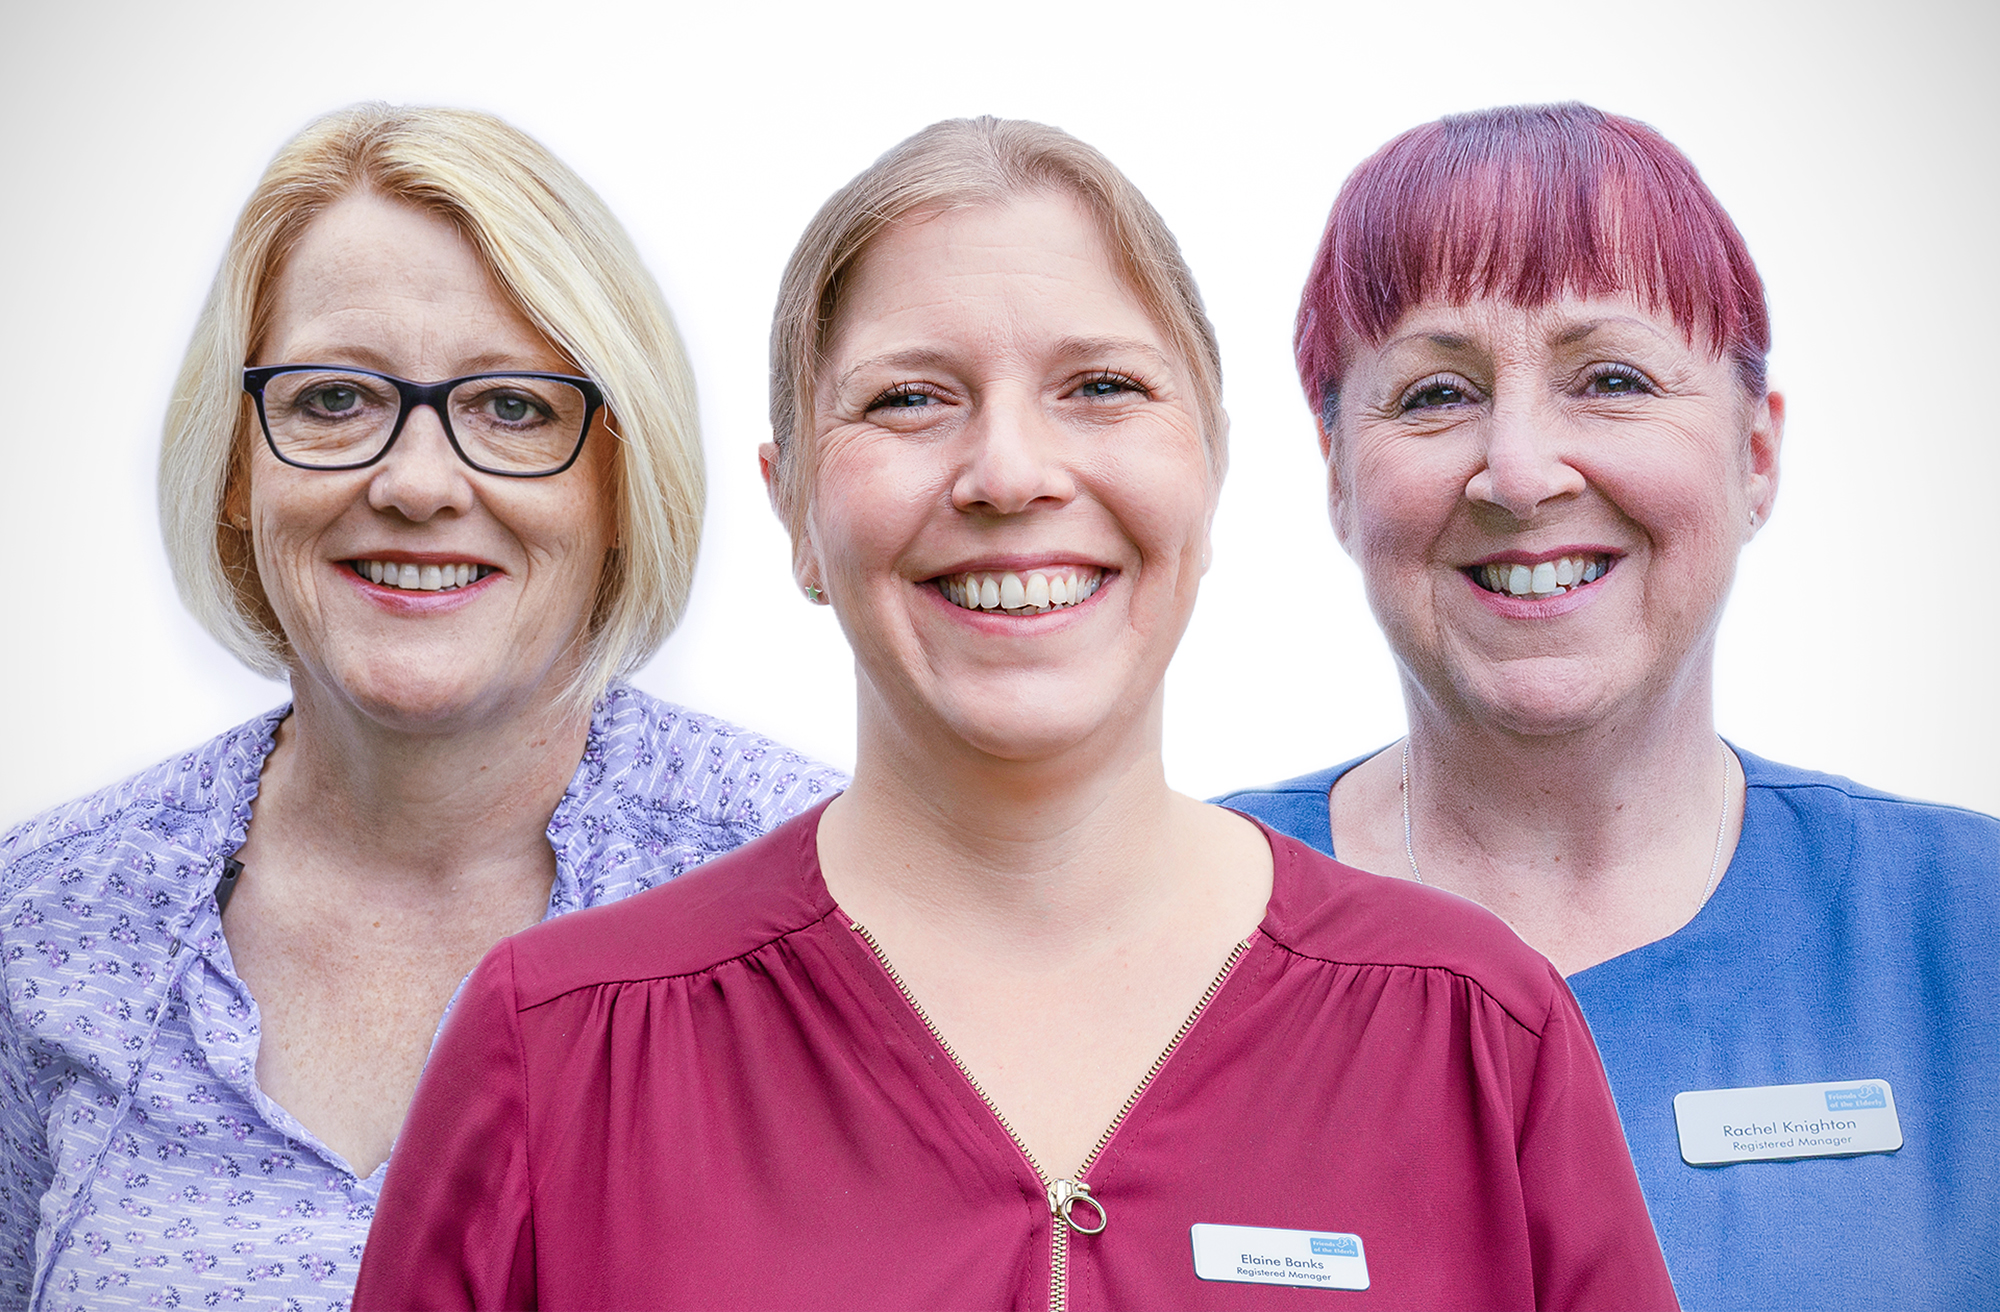 Malvern care home managers Suzanne Park, Elaine Banks and Rachel Knighton